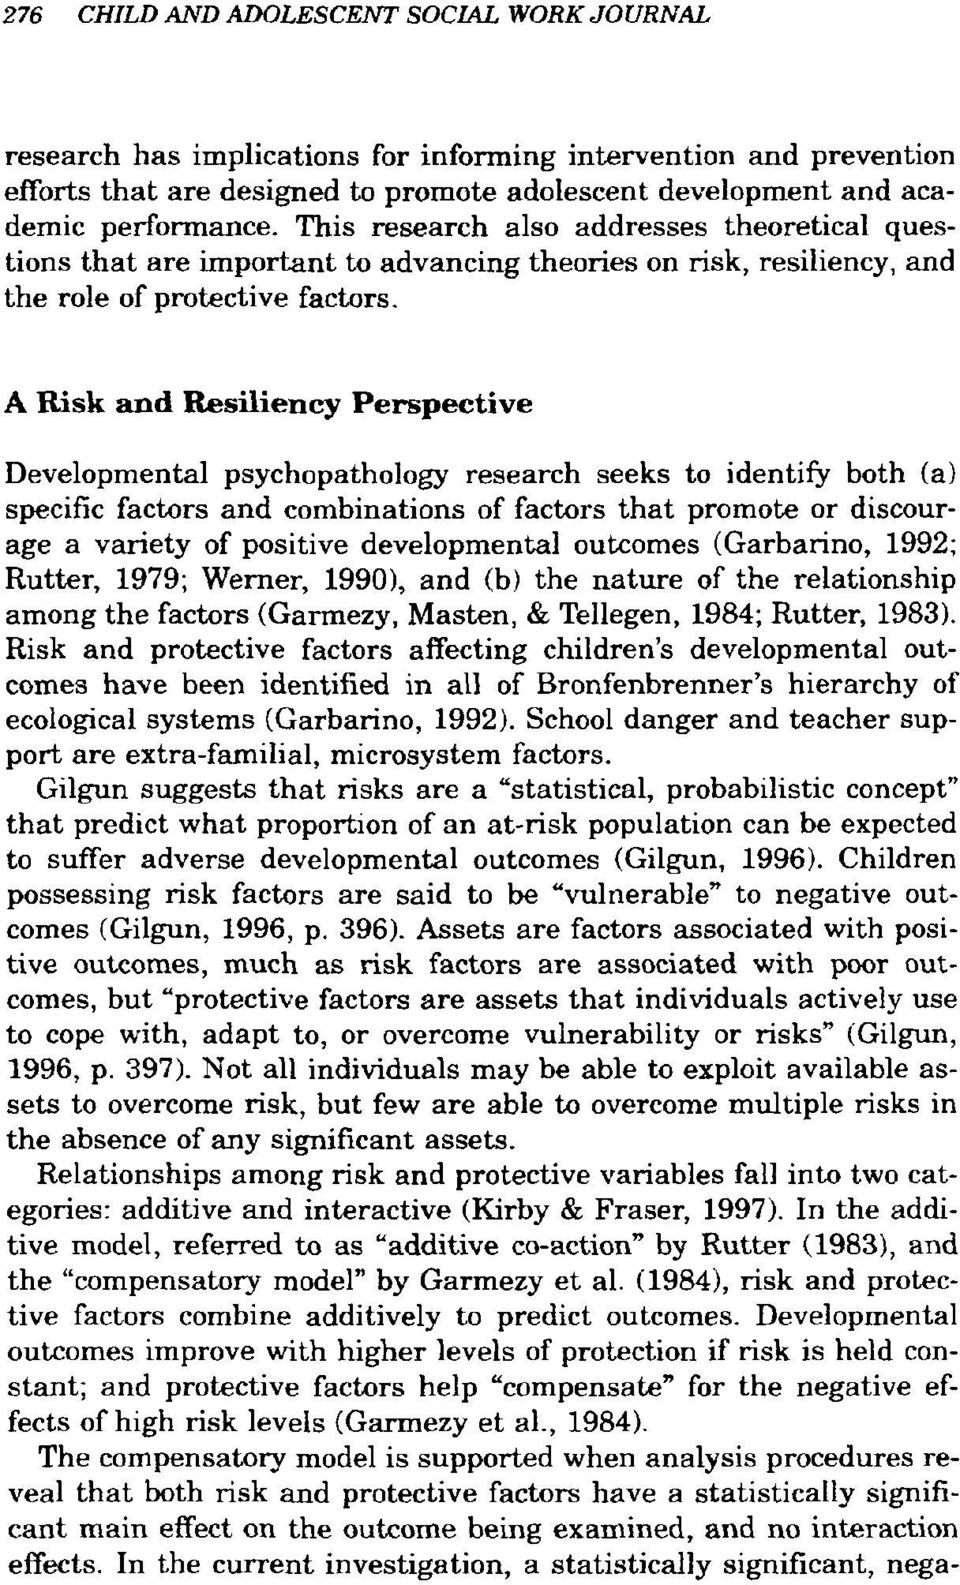 A Risk and Resiliency Perspective Developmental psychopathology research seeks to identify both (a) specific factors and combinations of factors that promote or discourage a variety of positive